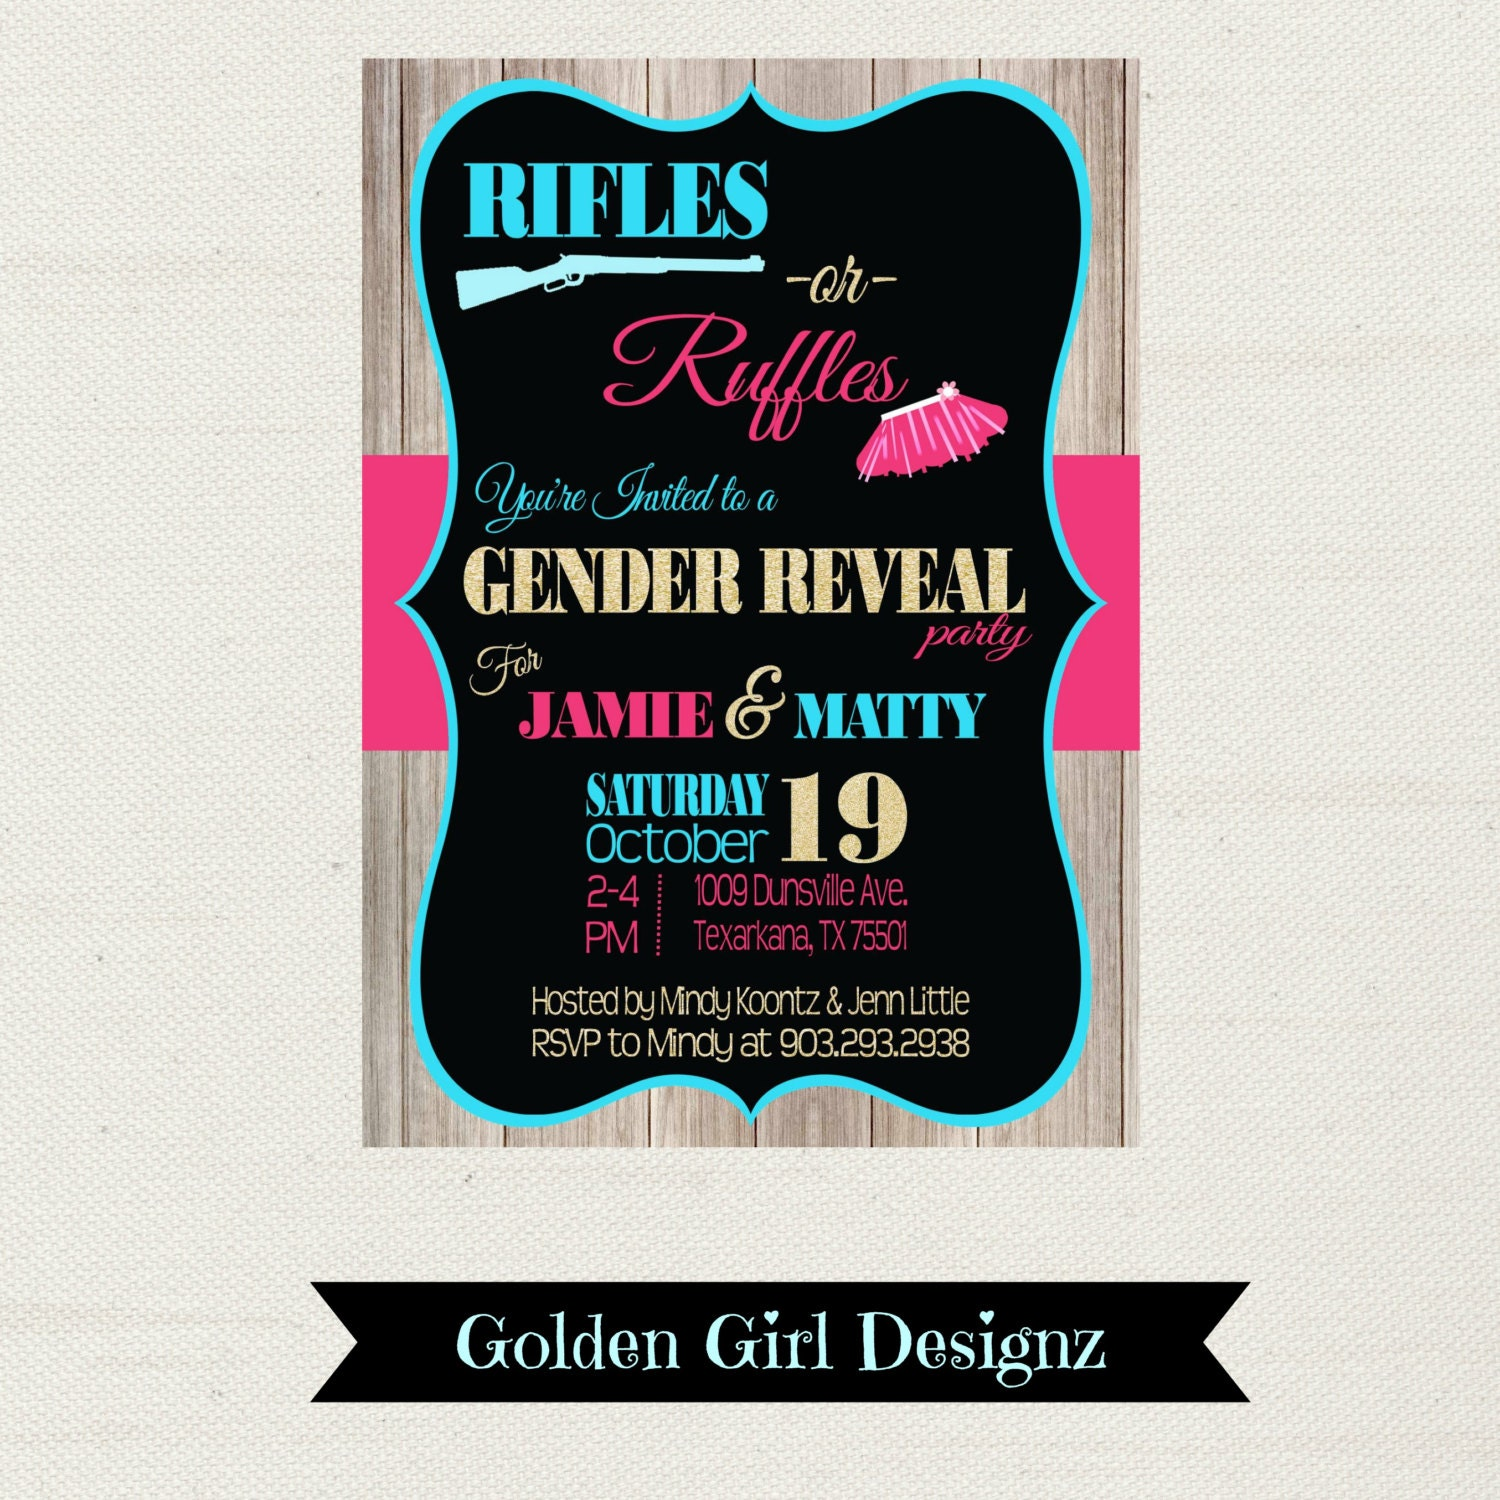 Rustic Rifles or Ruffles Gender Reveal Party Invitation Baby